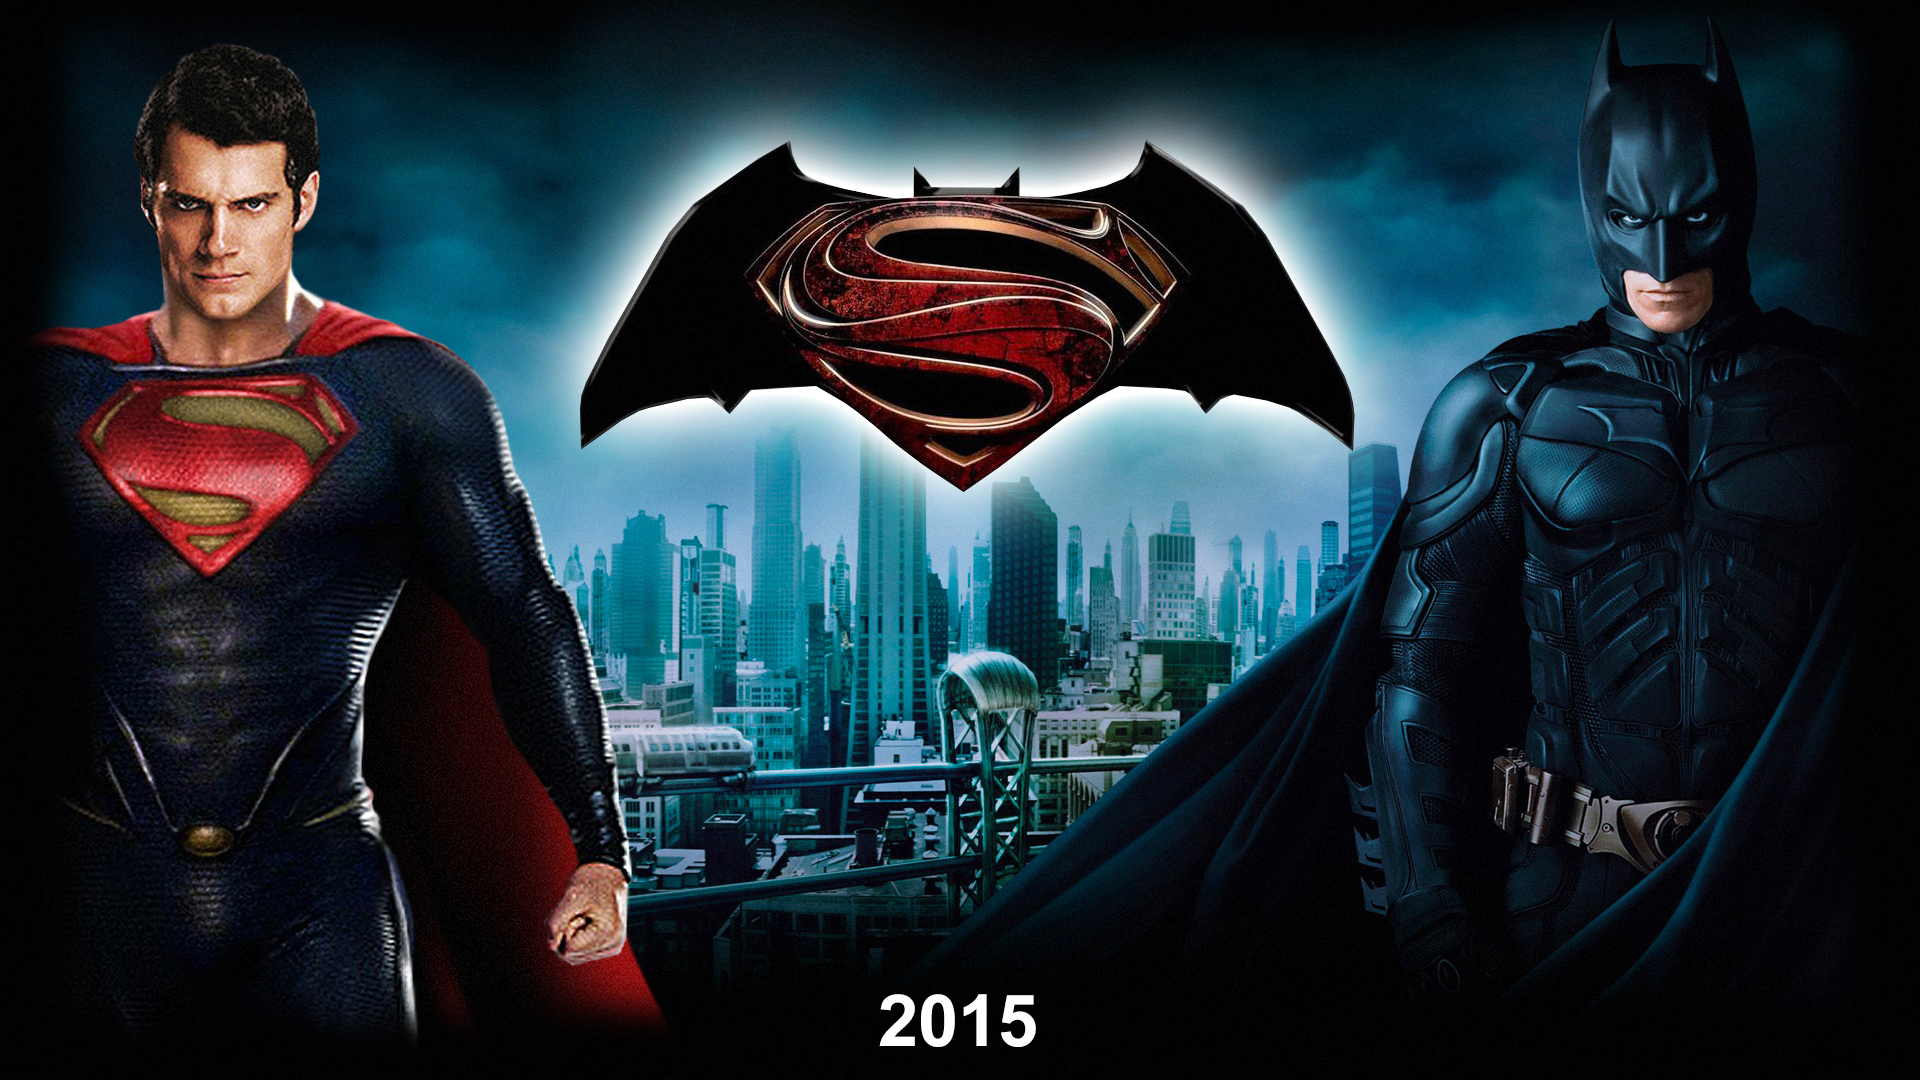 batman vs superman 2015 movie wallpaper | 1920x1080 | #9031